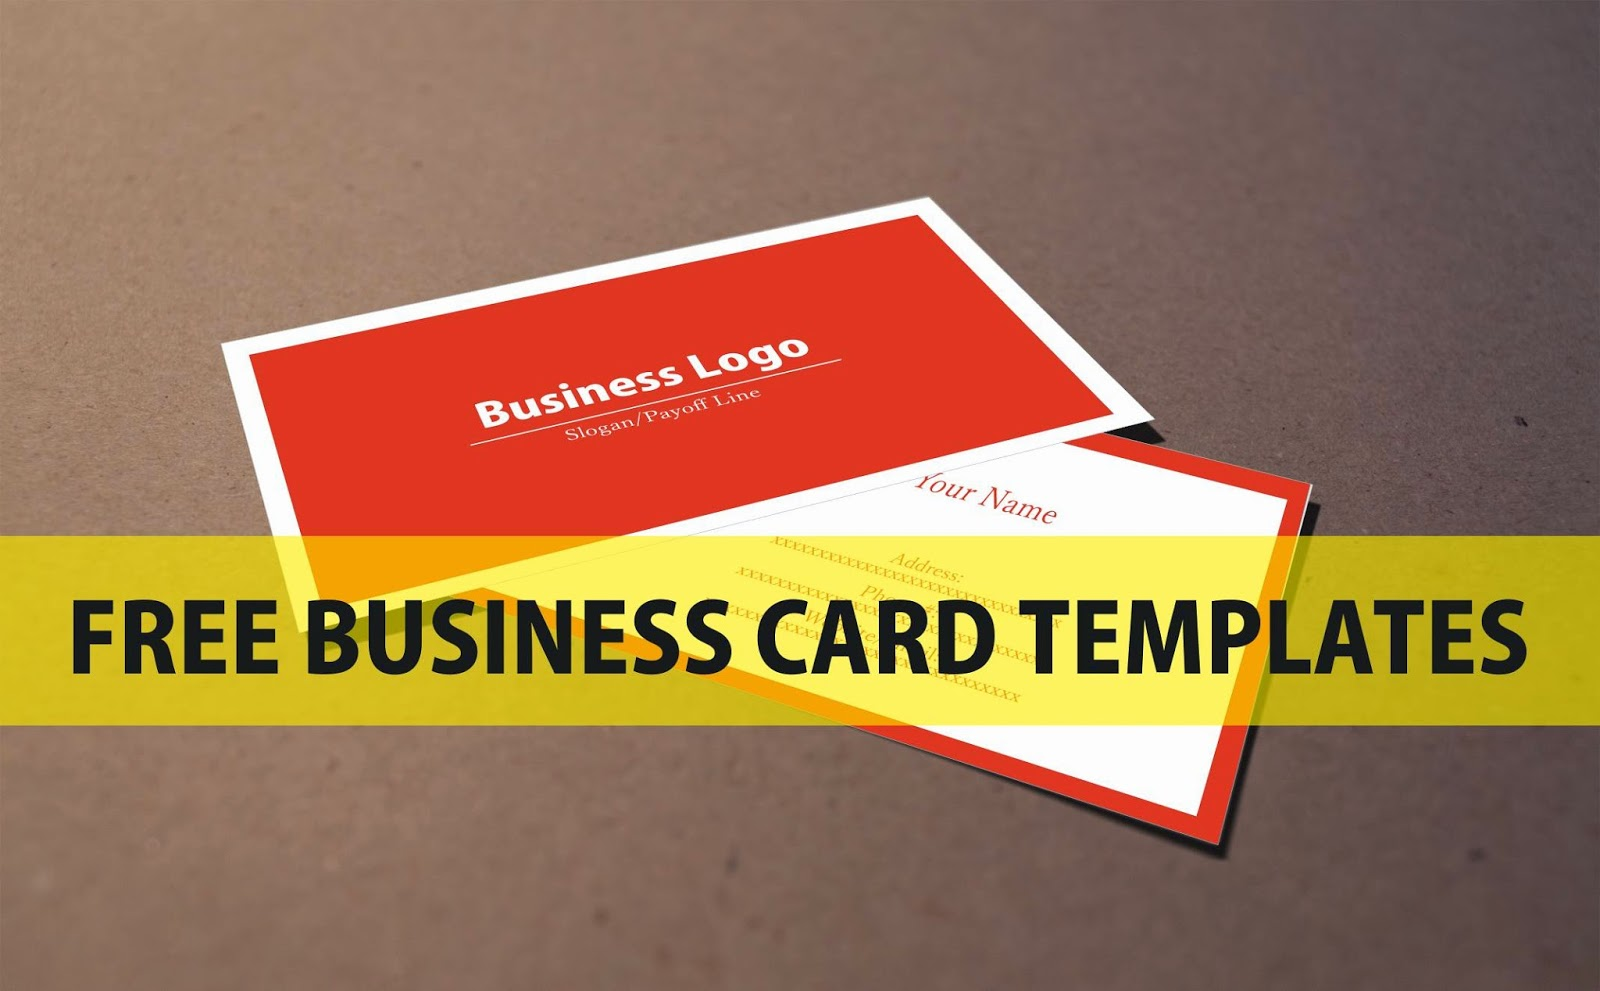 Free business card template download coreldraw file a graphic free business card template download coreldraw file reheart